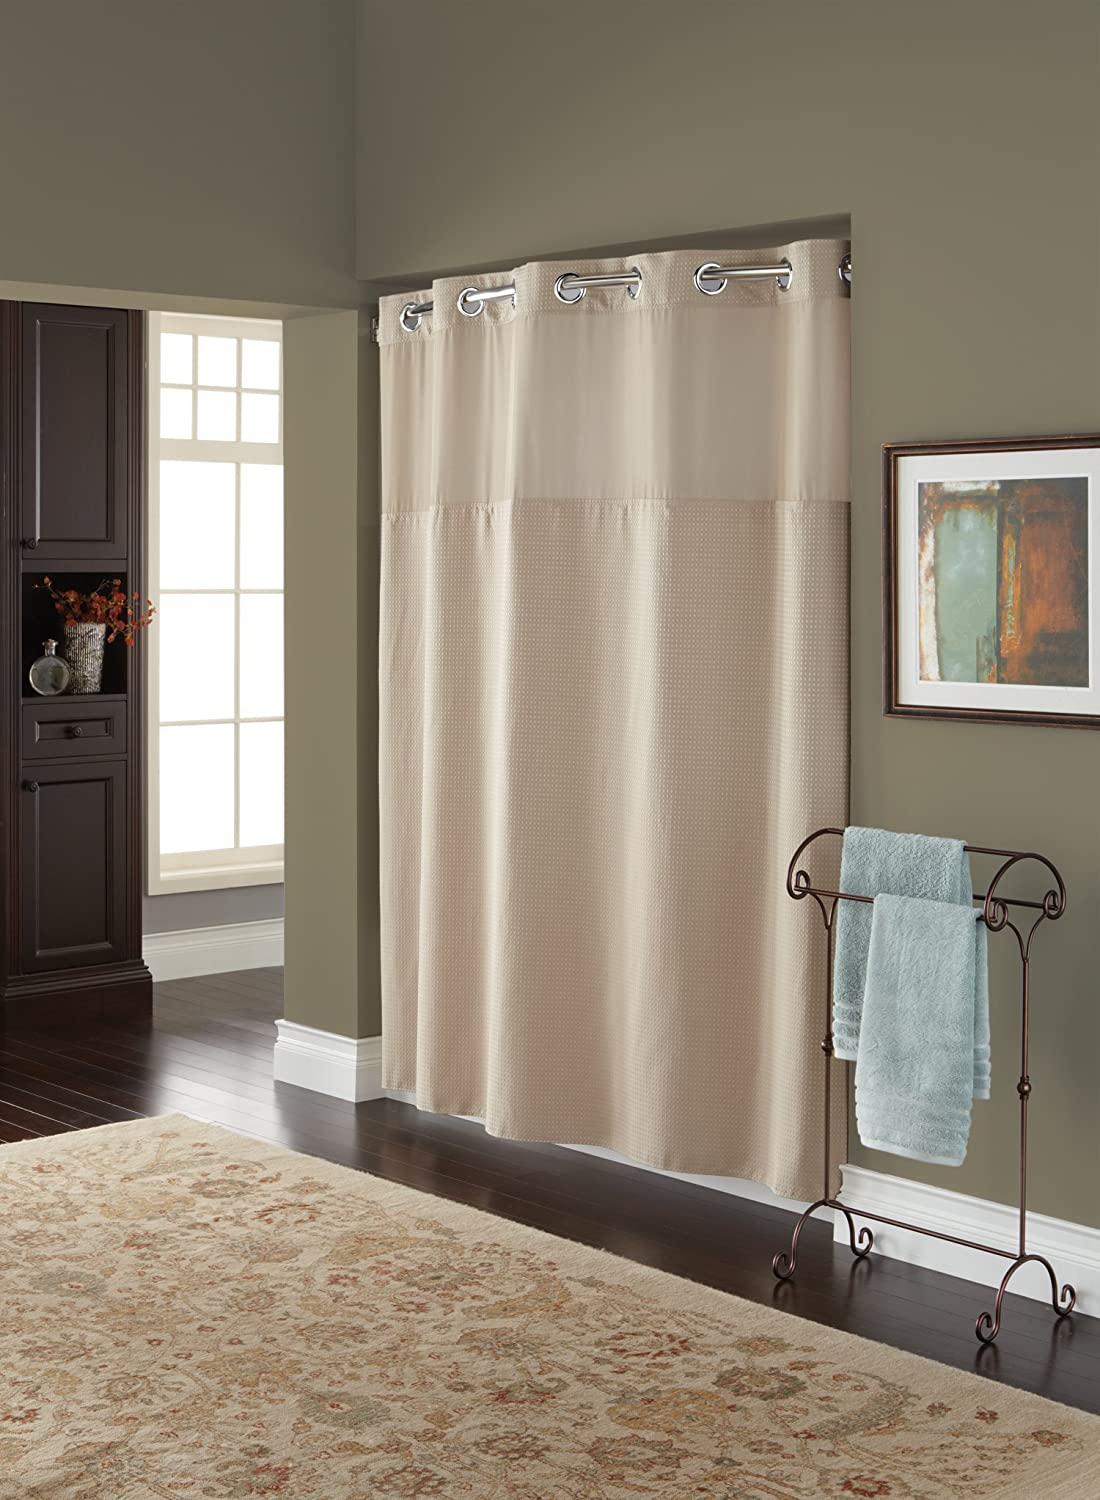 Hookless fabric shower curtain with built in liner taupe diamond pique - Amazon Com Hookless Rbh82my418 Fabric Shower Curtain With Built In Liner Taupe Diamond Pique Home Kitchen